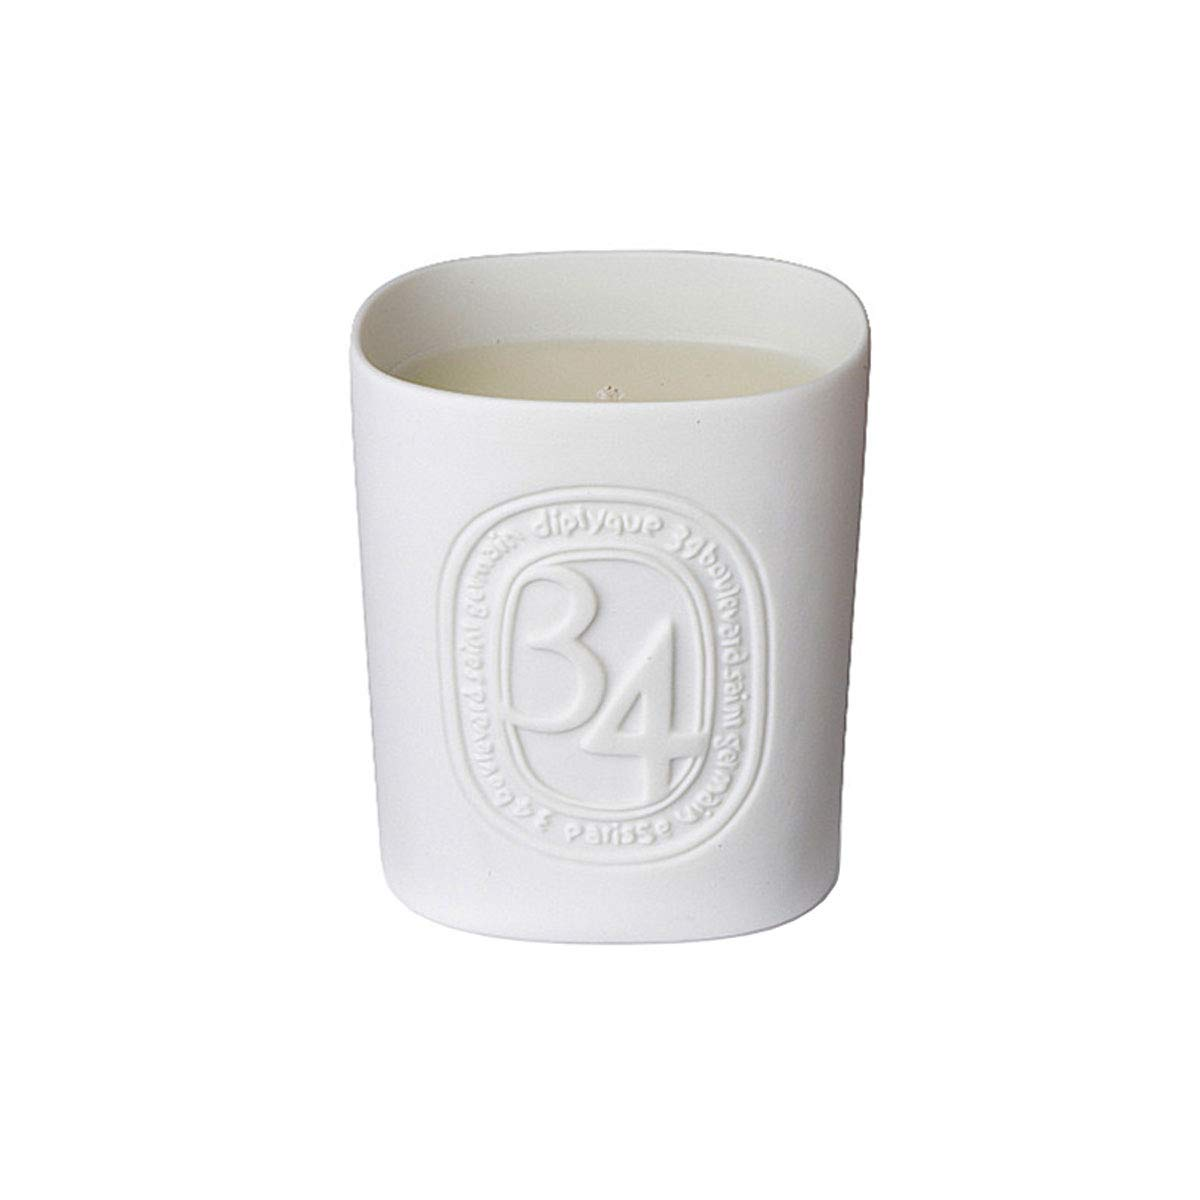 Diptyque 34 Scented Candle 7.5 oz